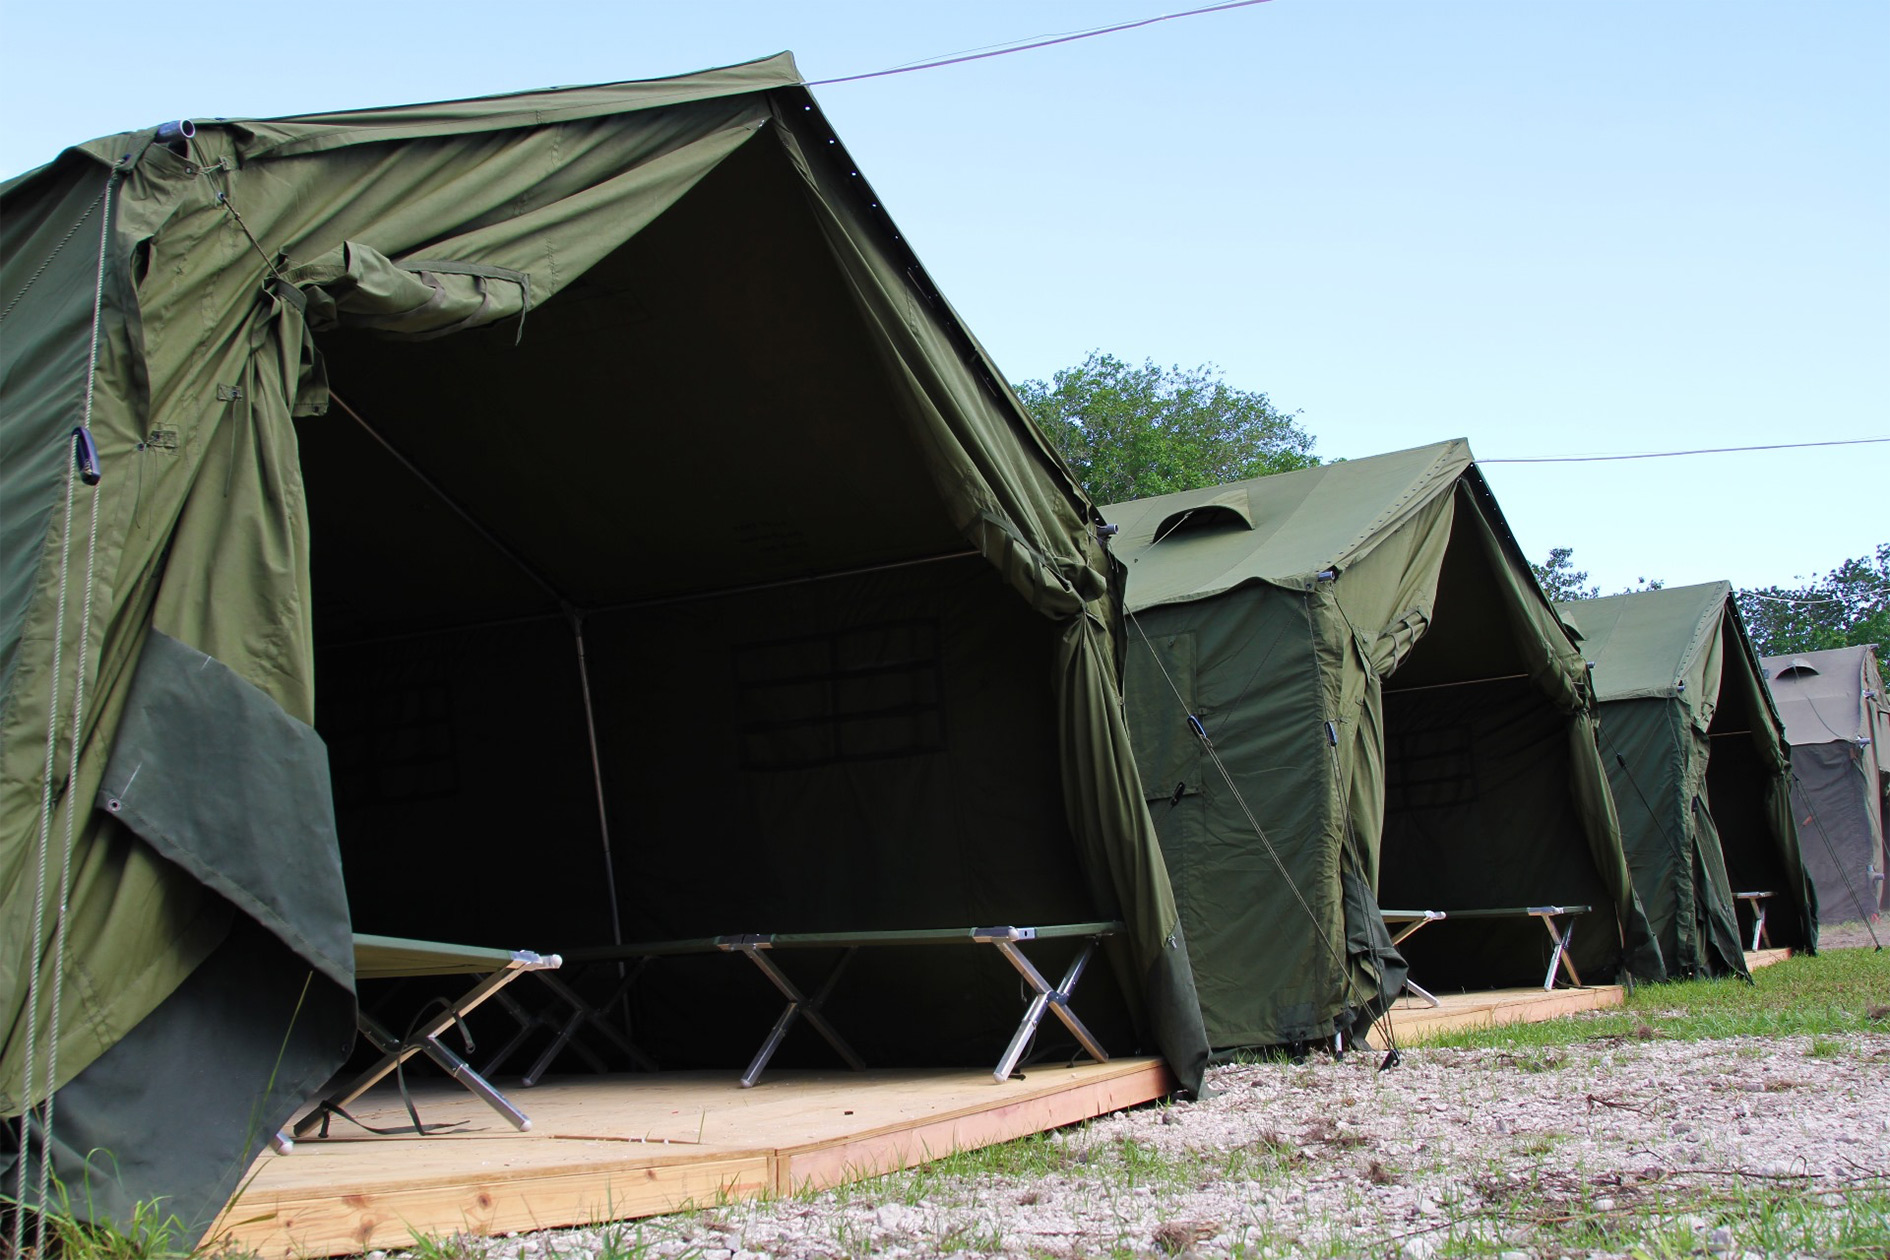 'Accommodation' in the Nauru offshore detention centre. Photo from 2012.